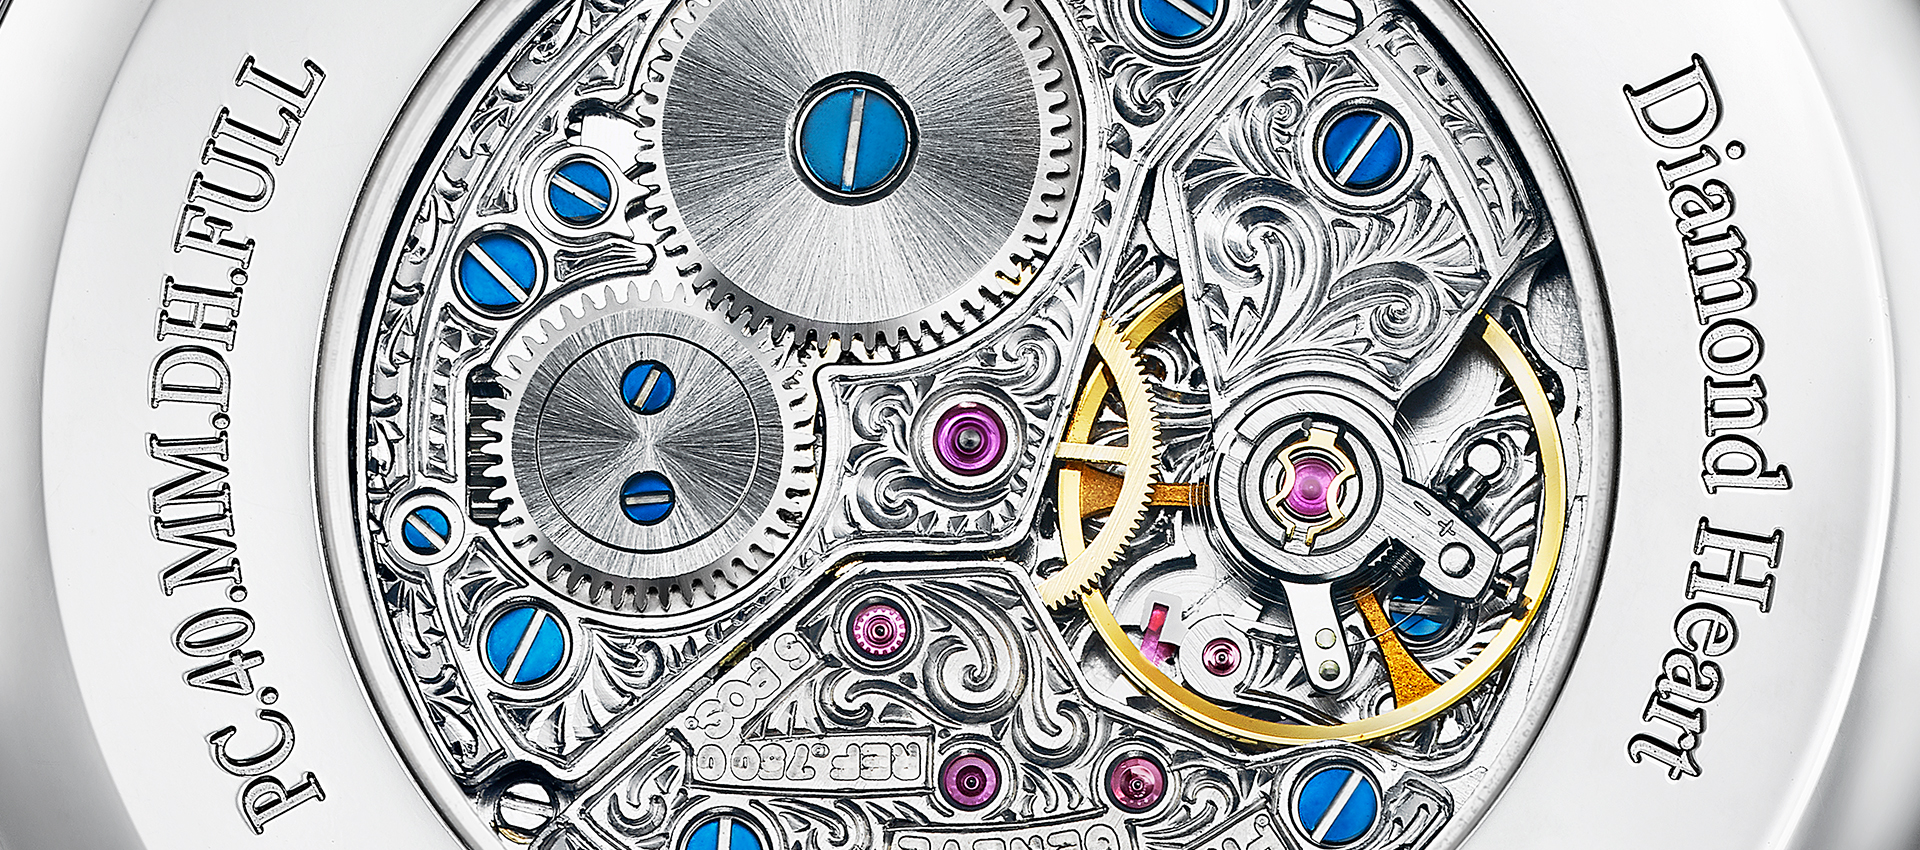 Backes & Strauss luxury watches for him and her